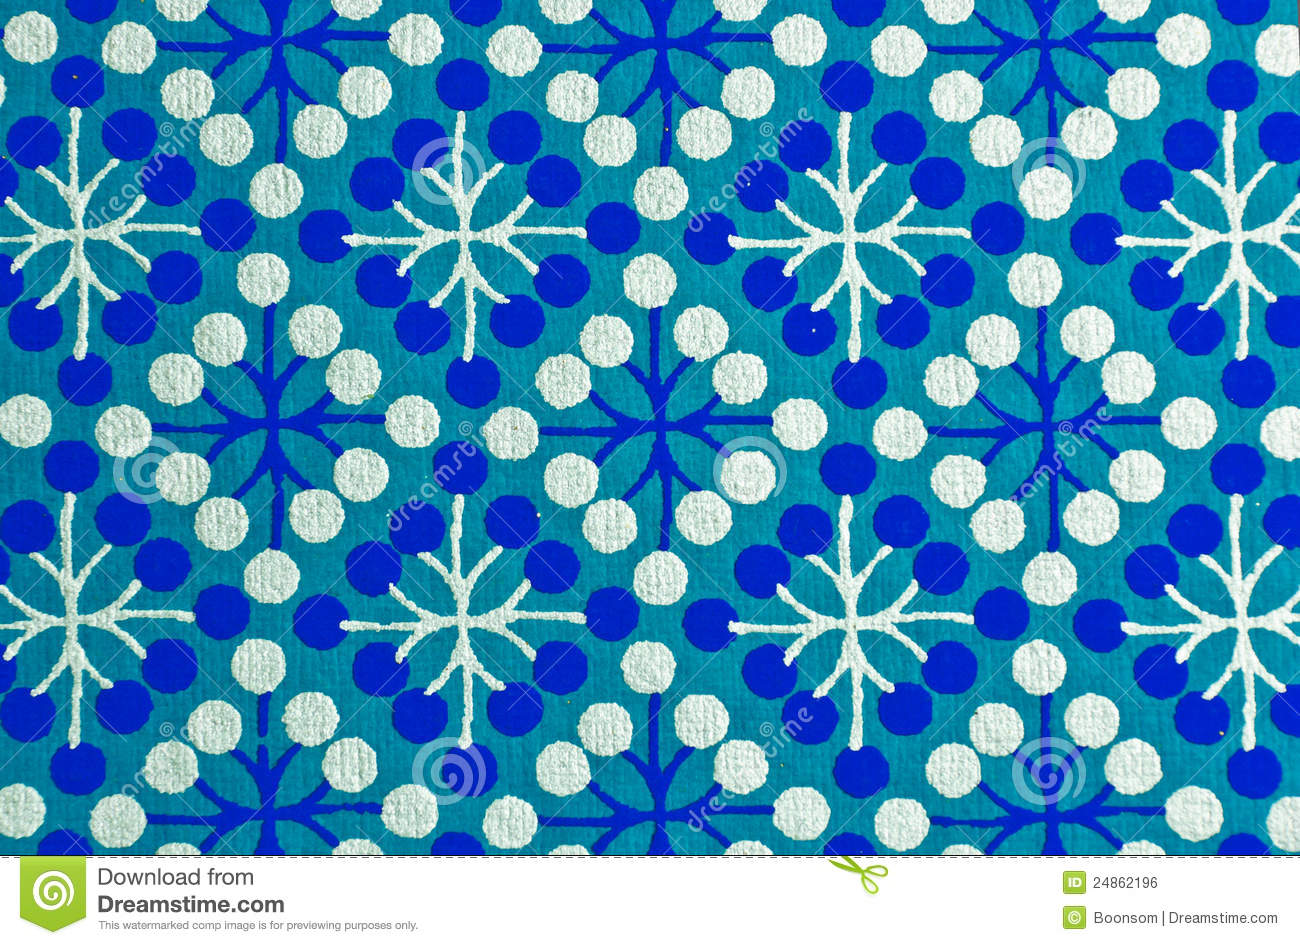 papel decorativo azul imagem de stock royalty free